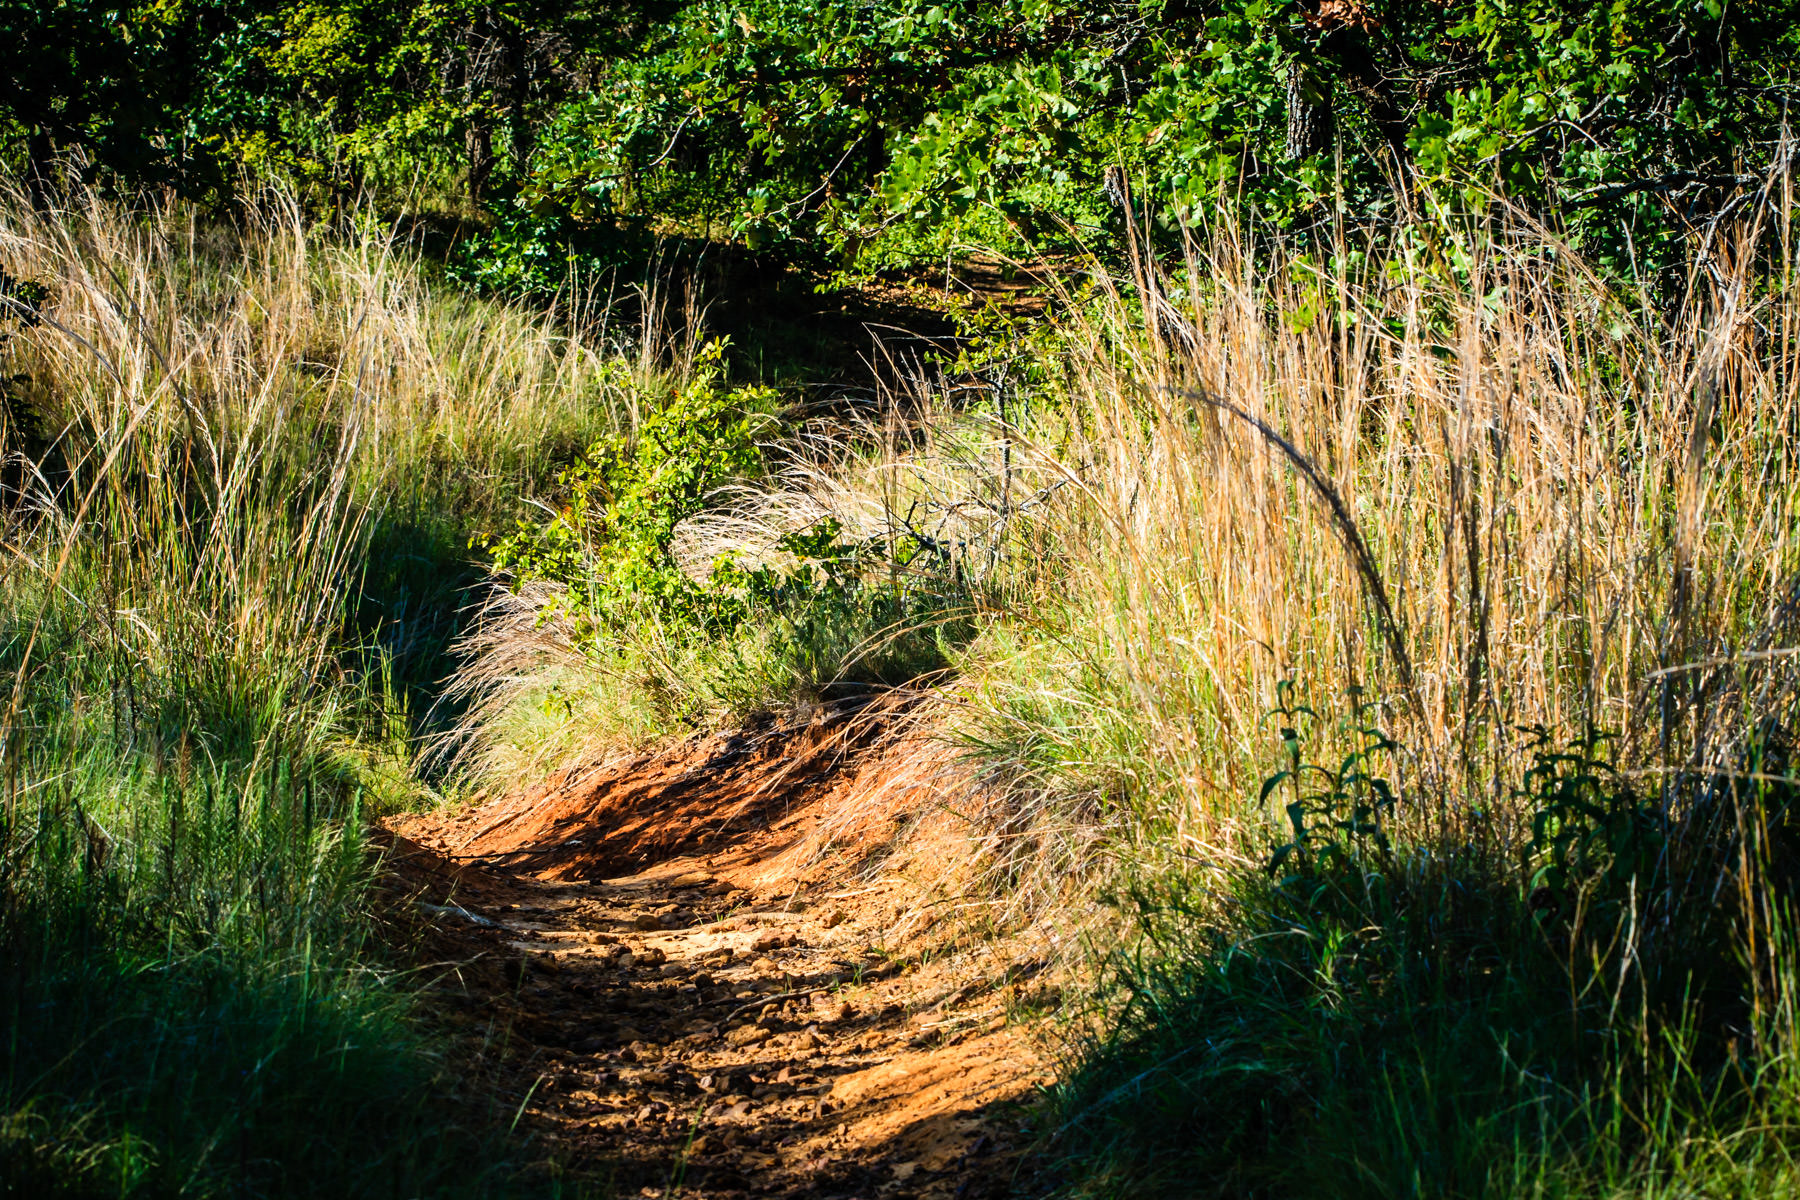 A red clay path worn through the tall grass at Texas' Lake Ray Roberts State Park.